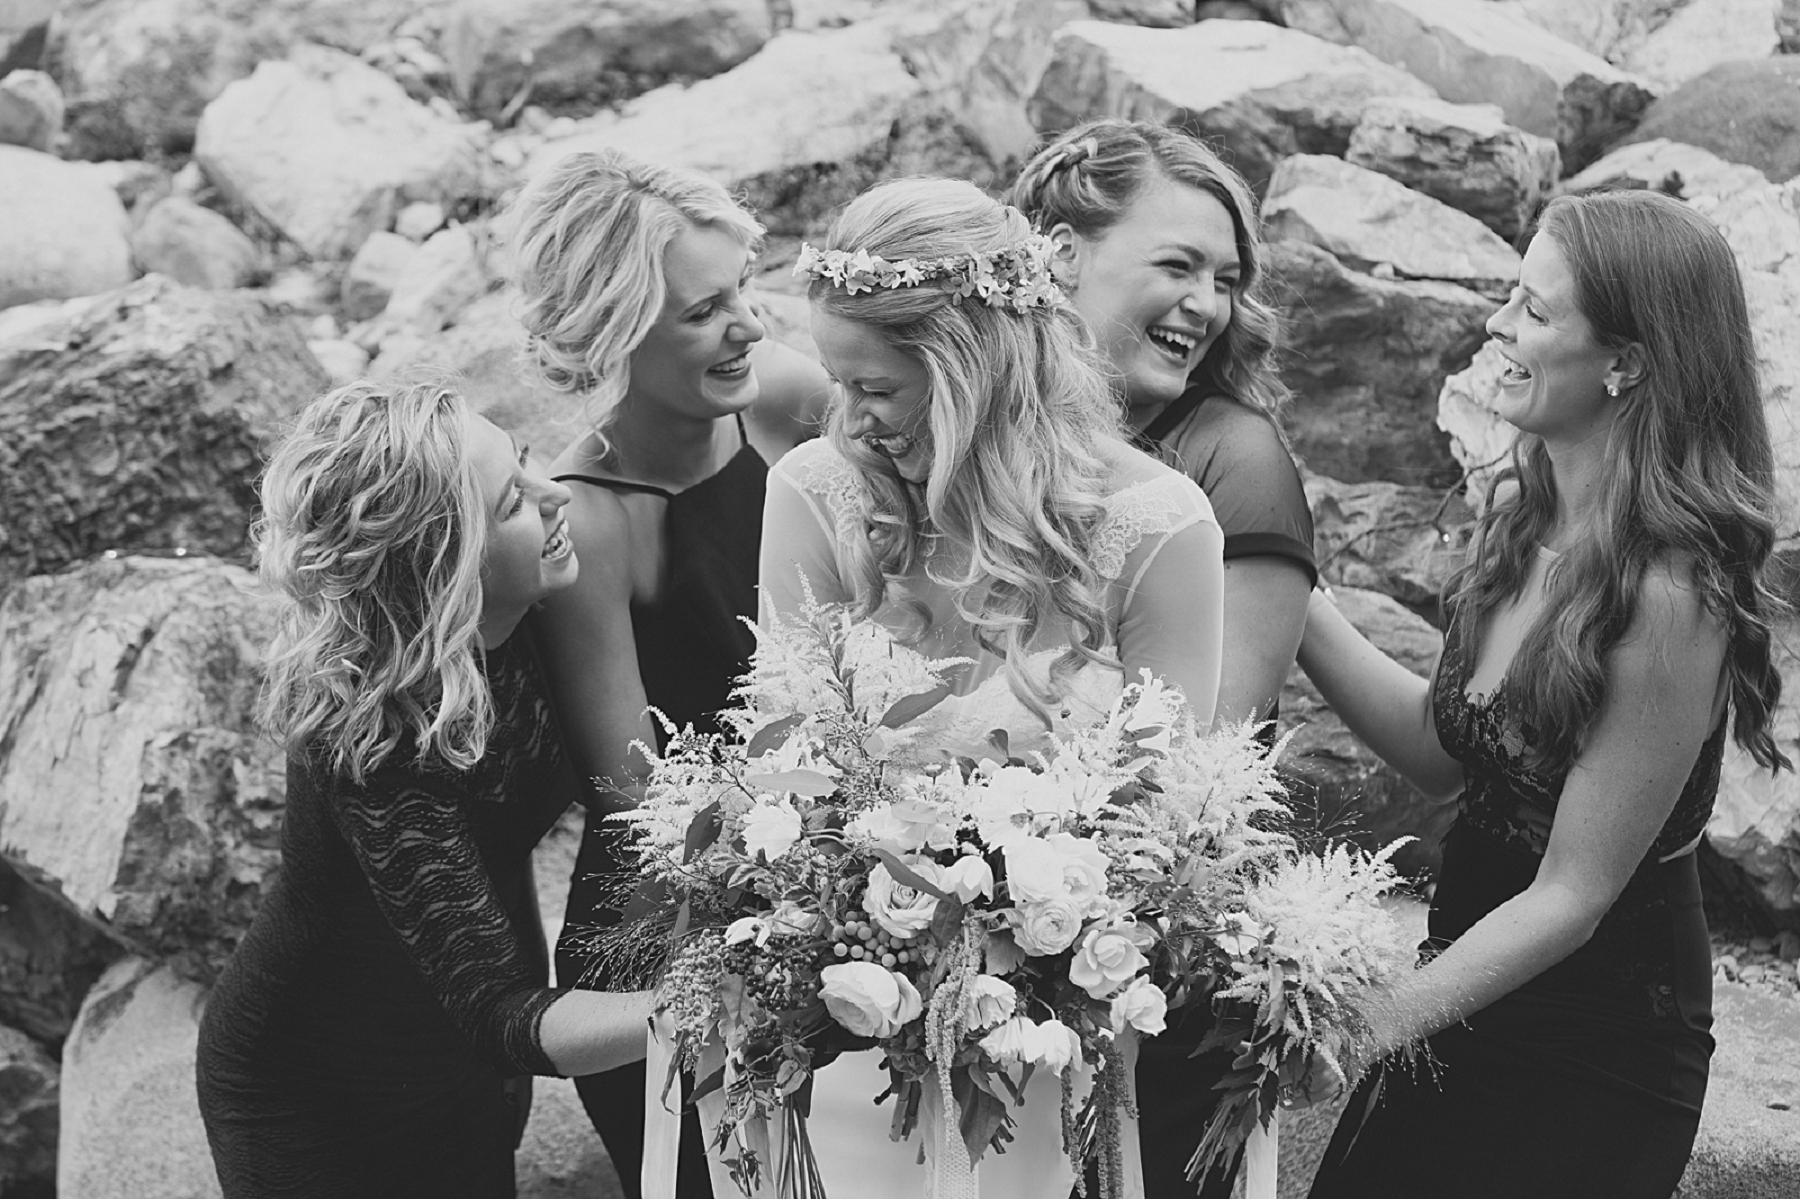 Jennifer_Mooney_Photo_glacier_park_wedding_Beargrass_florals_fall_wedding_elegant_montana_destination_velvet_bride_katie_may_dress_verona_gown_00043.jpg